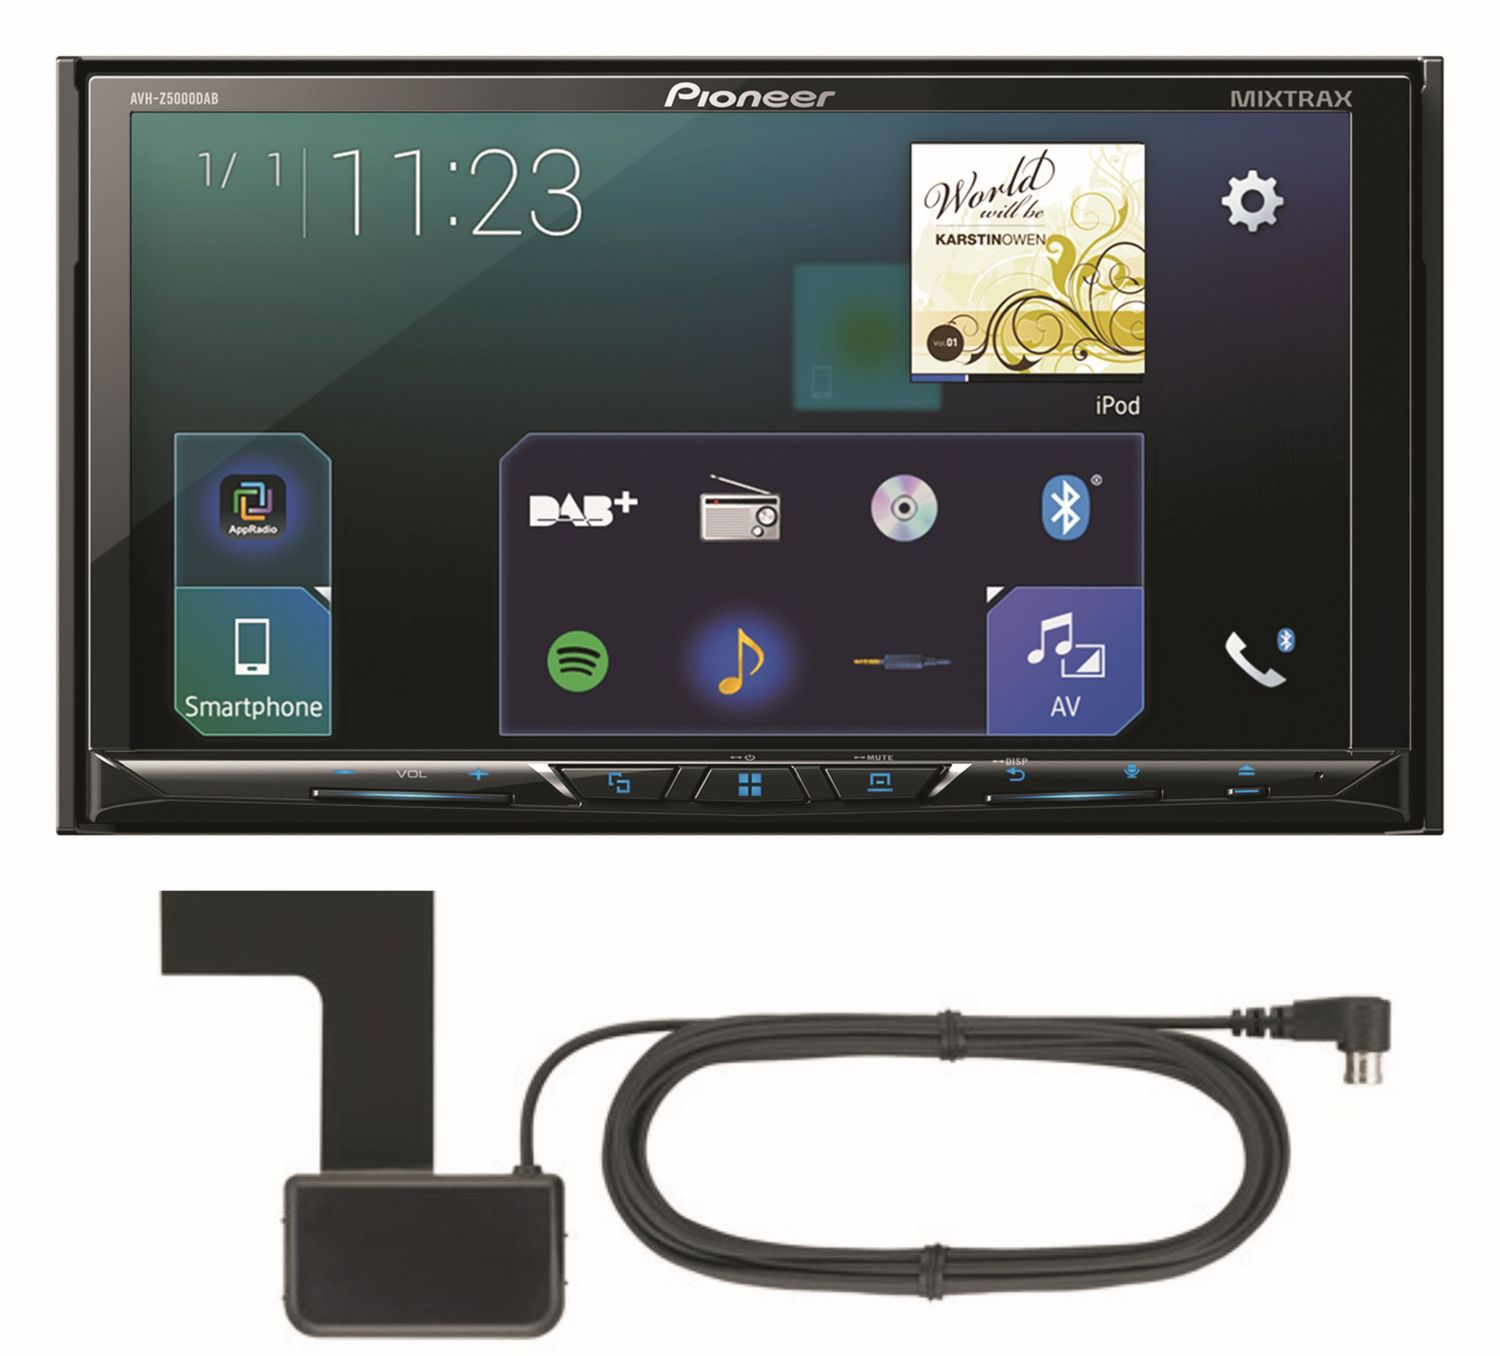 Pioneer AVH-Z5000DAB Digitalradio CarPlay Android Auto Autoradio ...